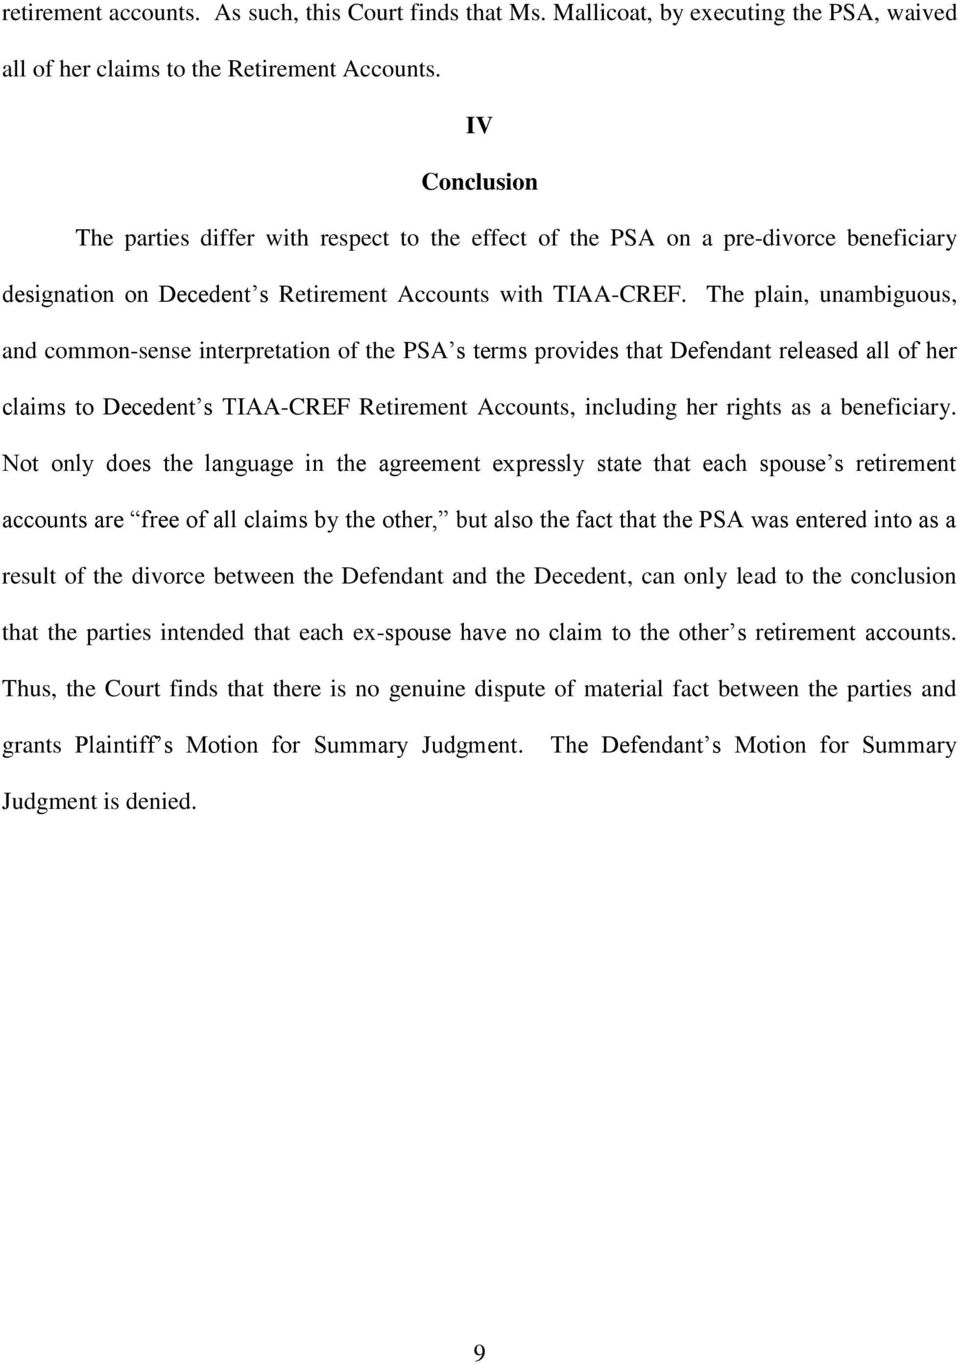 The plain, unambiguous, and common-sense interpretation of the PSA s terms provides that Defendant released all of her claims to Decedent s TIAA-CREF Retirement Accounts, including her rights as a